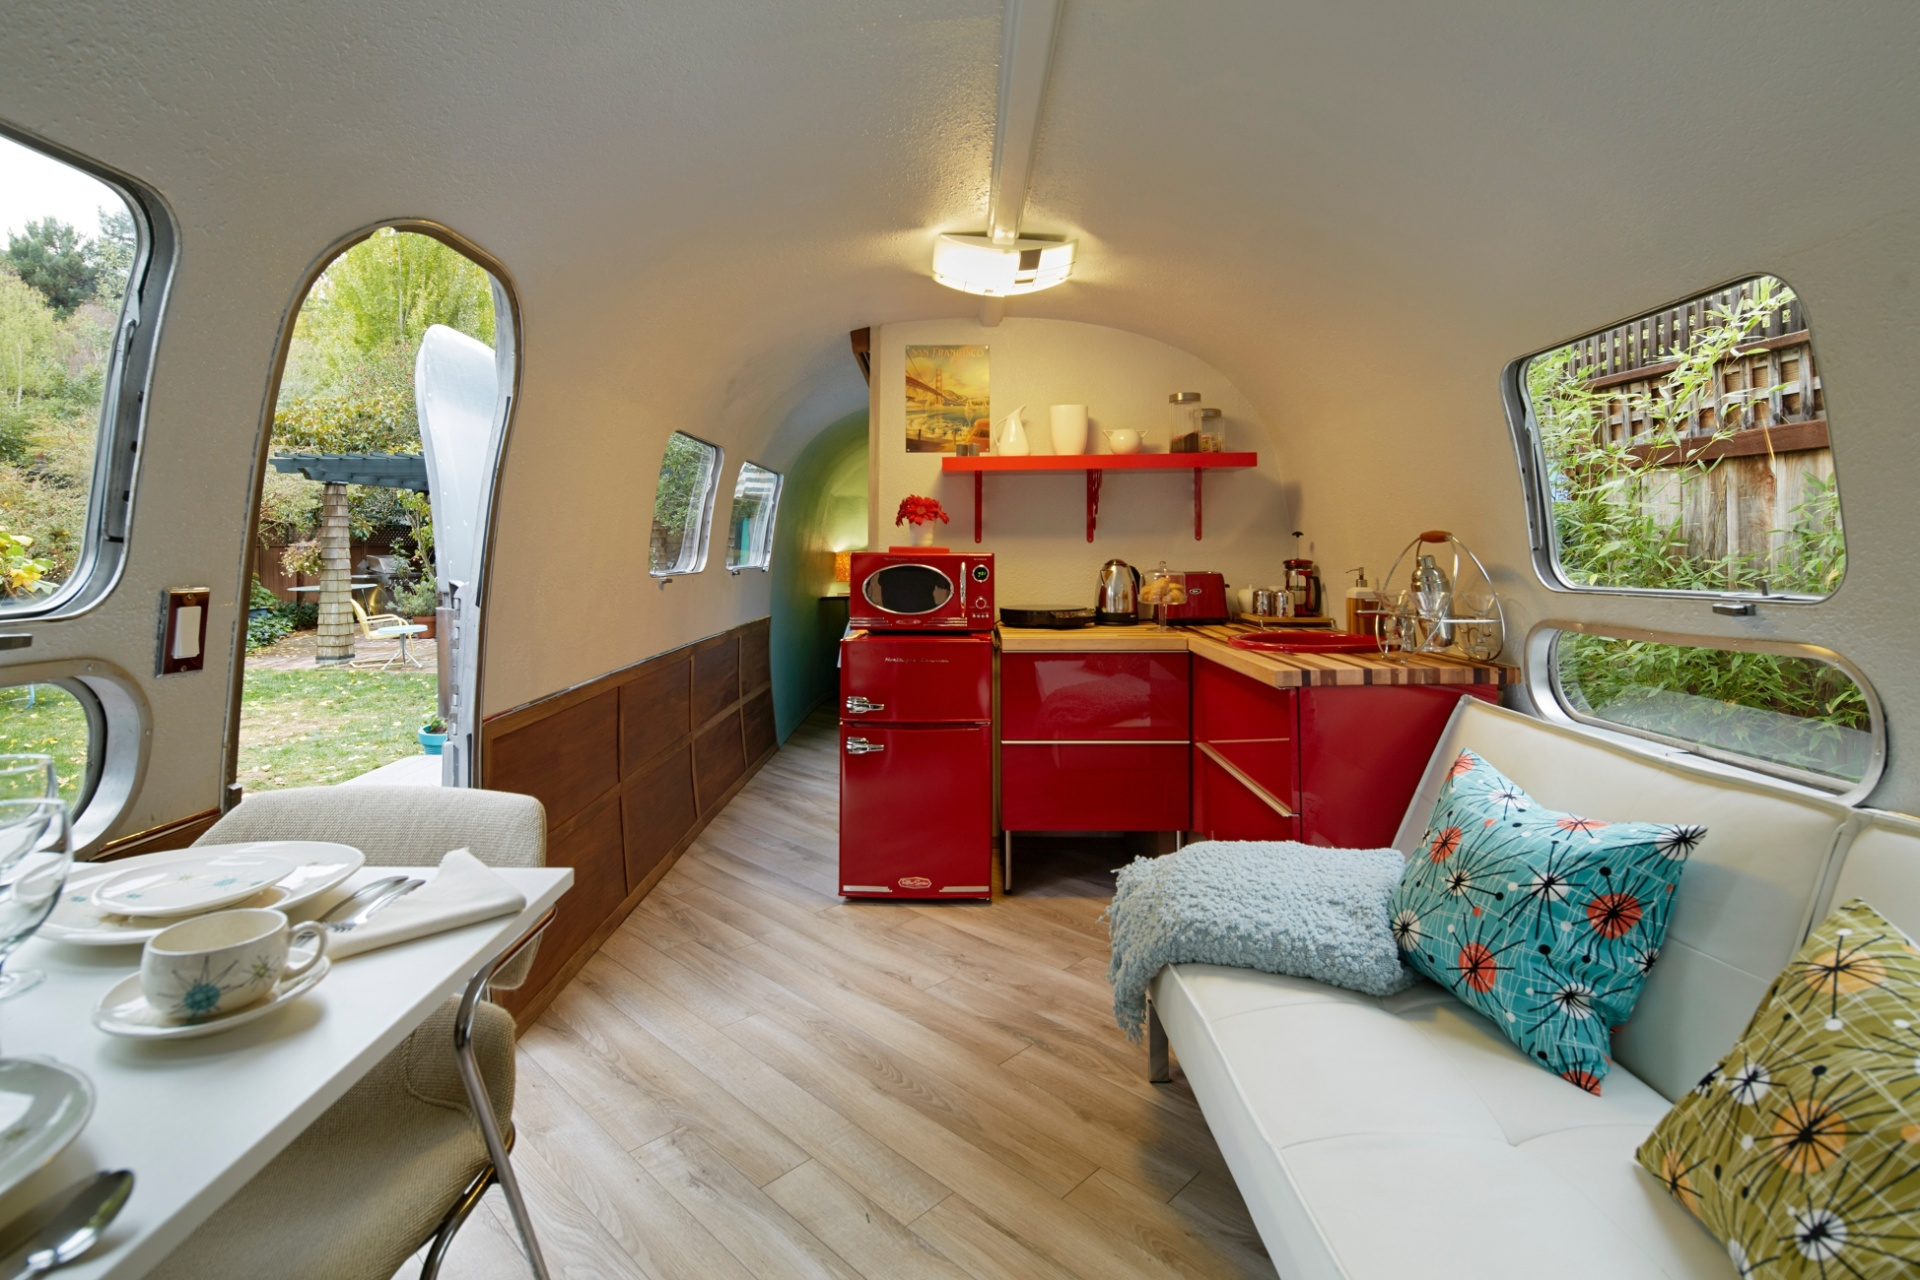 O interior do trailer modelo Airstream (1969) tem paredes curvas que geram a